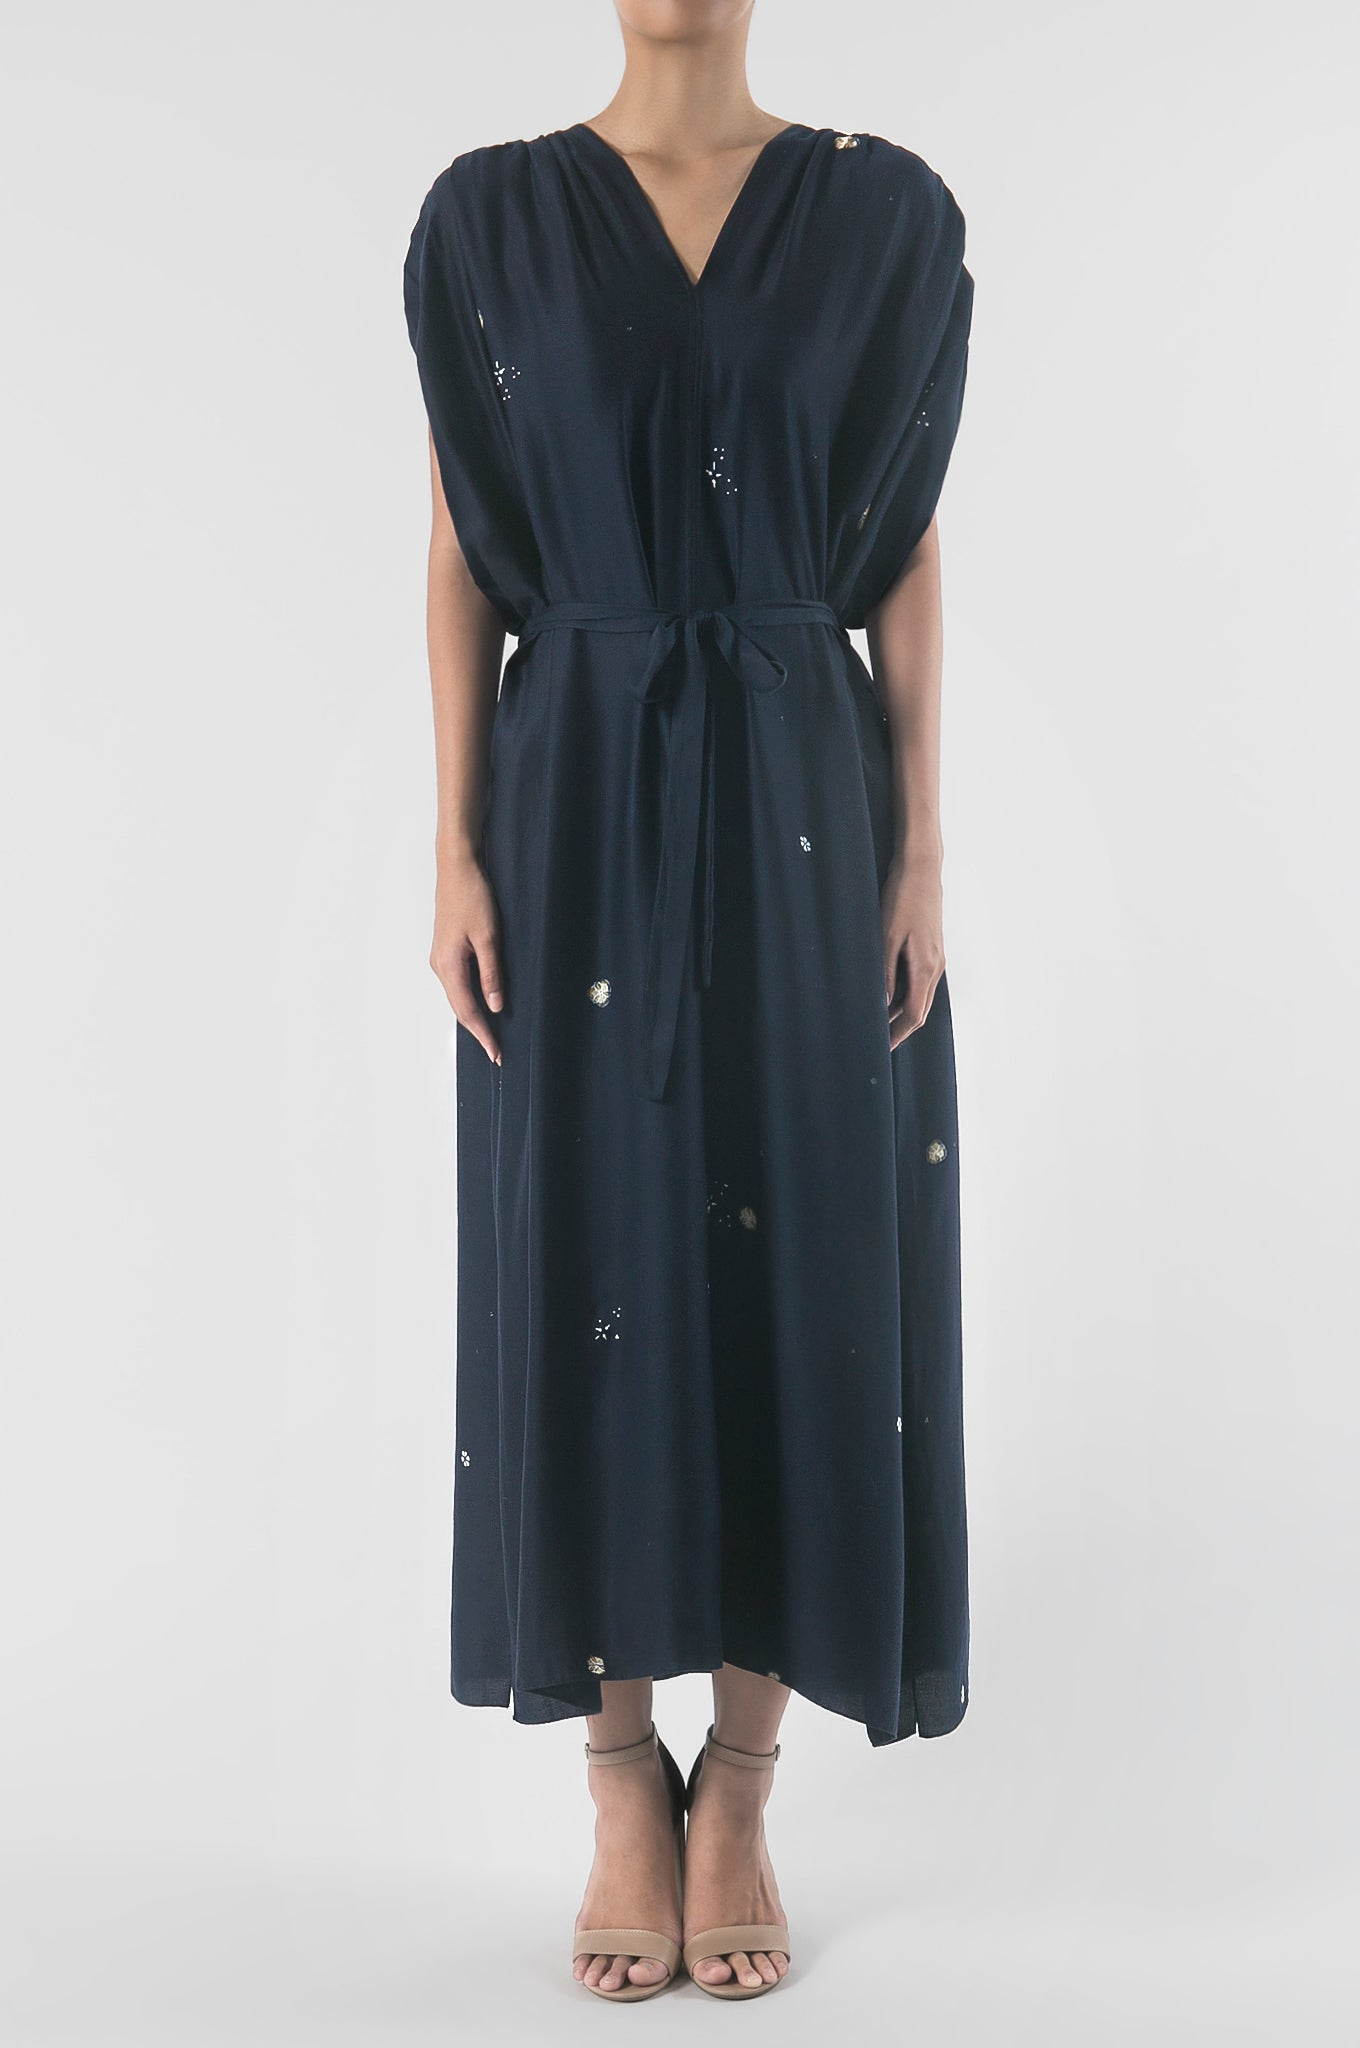 Seribu Bunga Midnight Goddess Dress